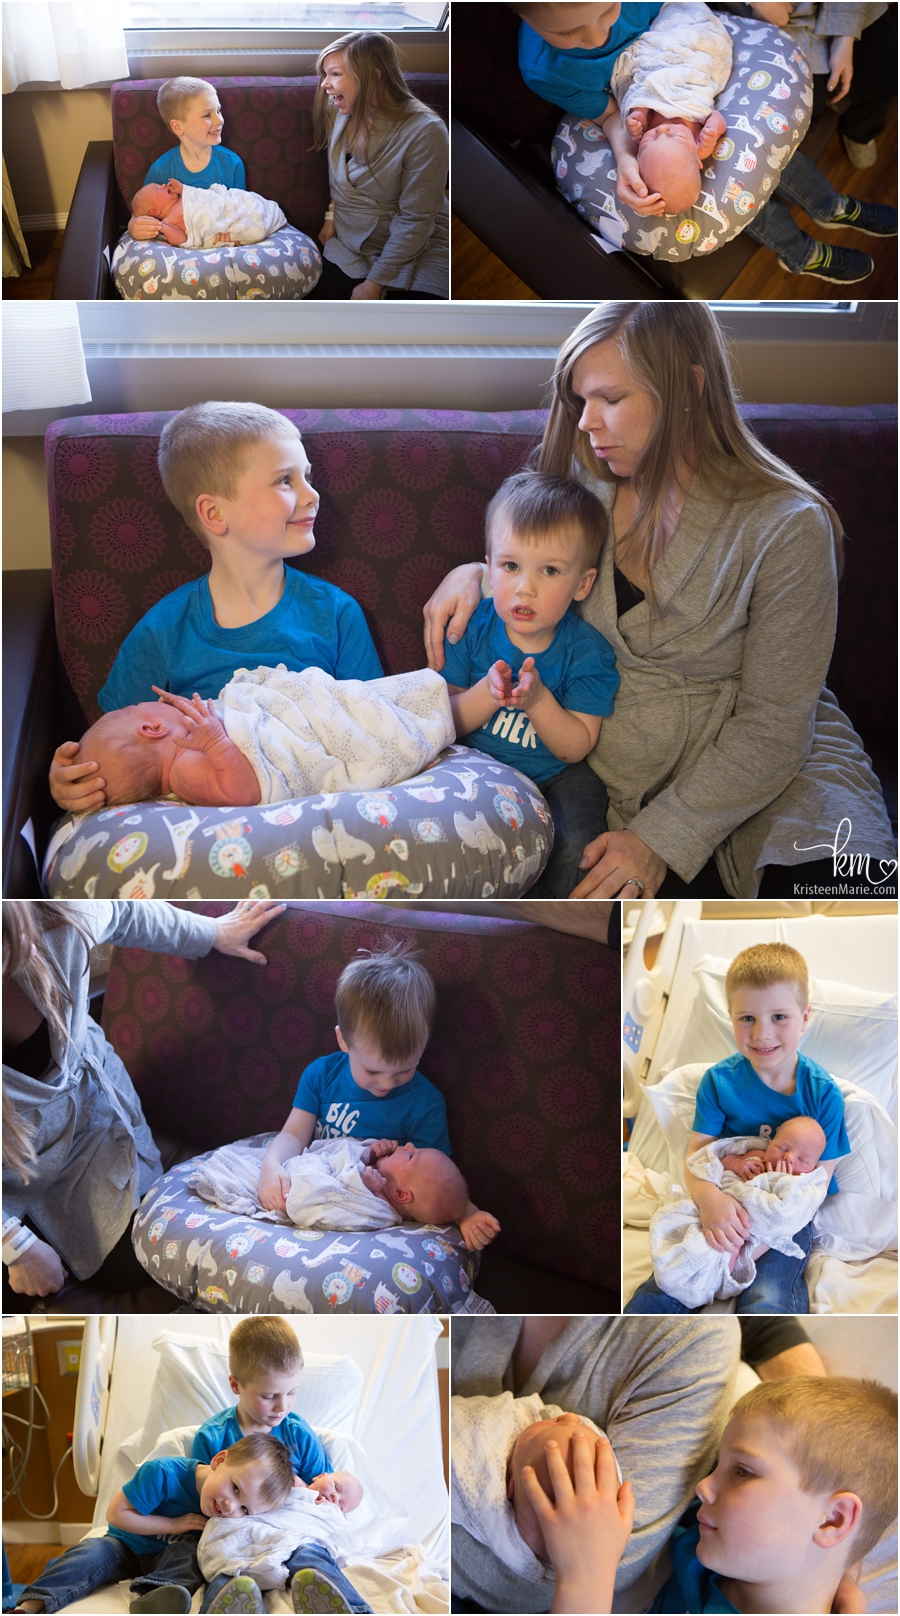 siblings holding baby sibling for first time in hospial